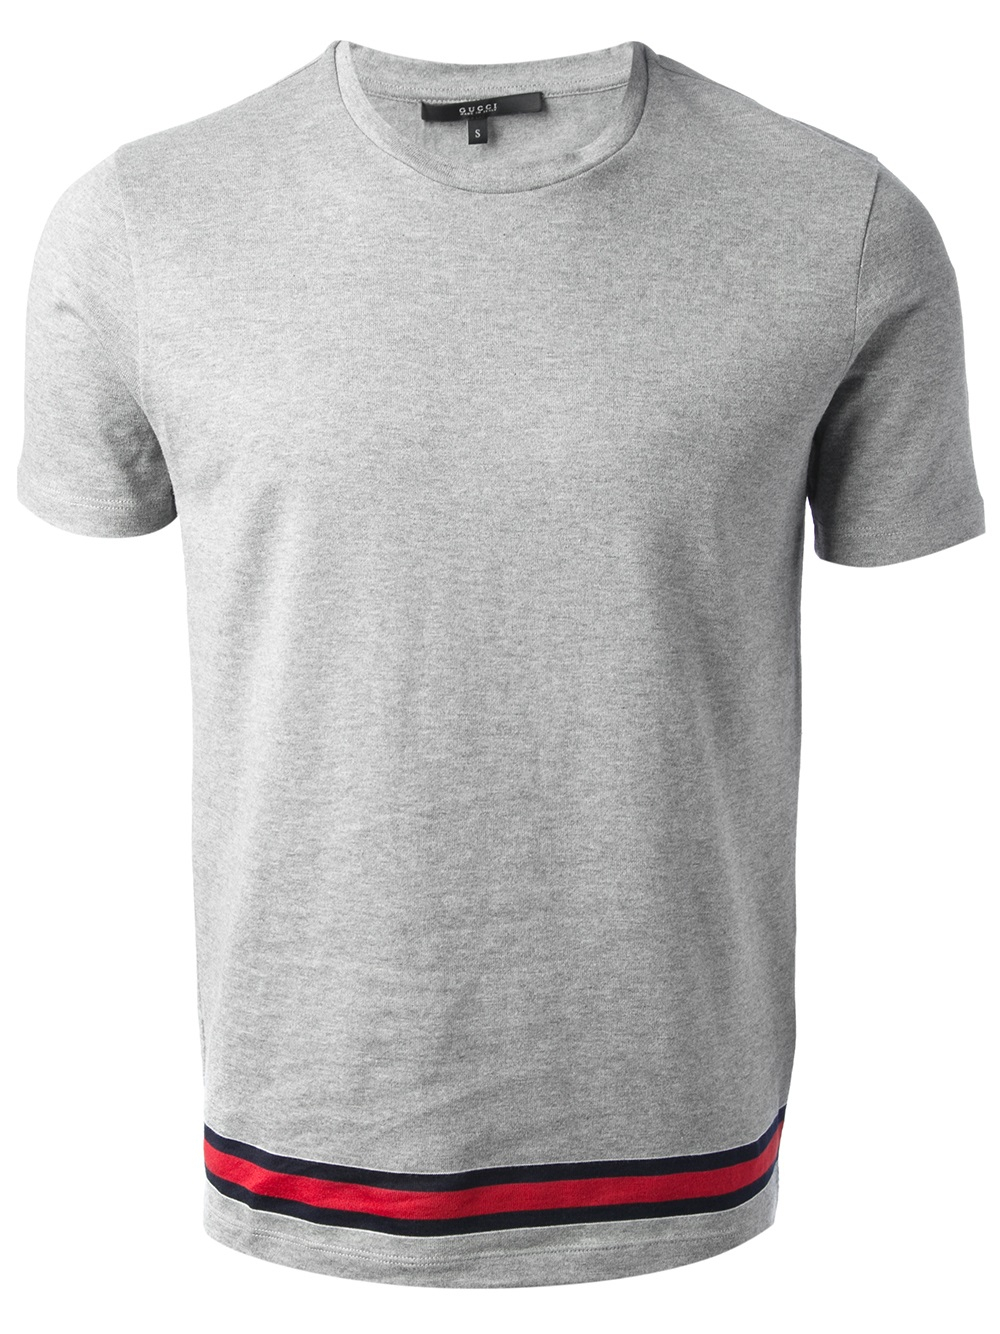 gucci classic tshirt in gray for men lyst. Black Bedroom Furniture Sets. Home Design Ideas